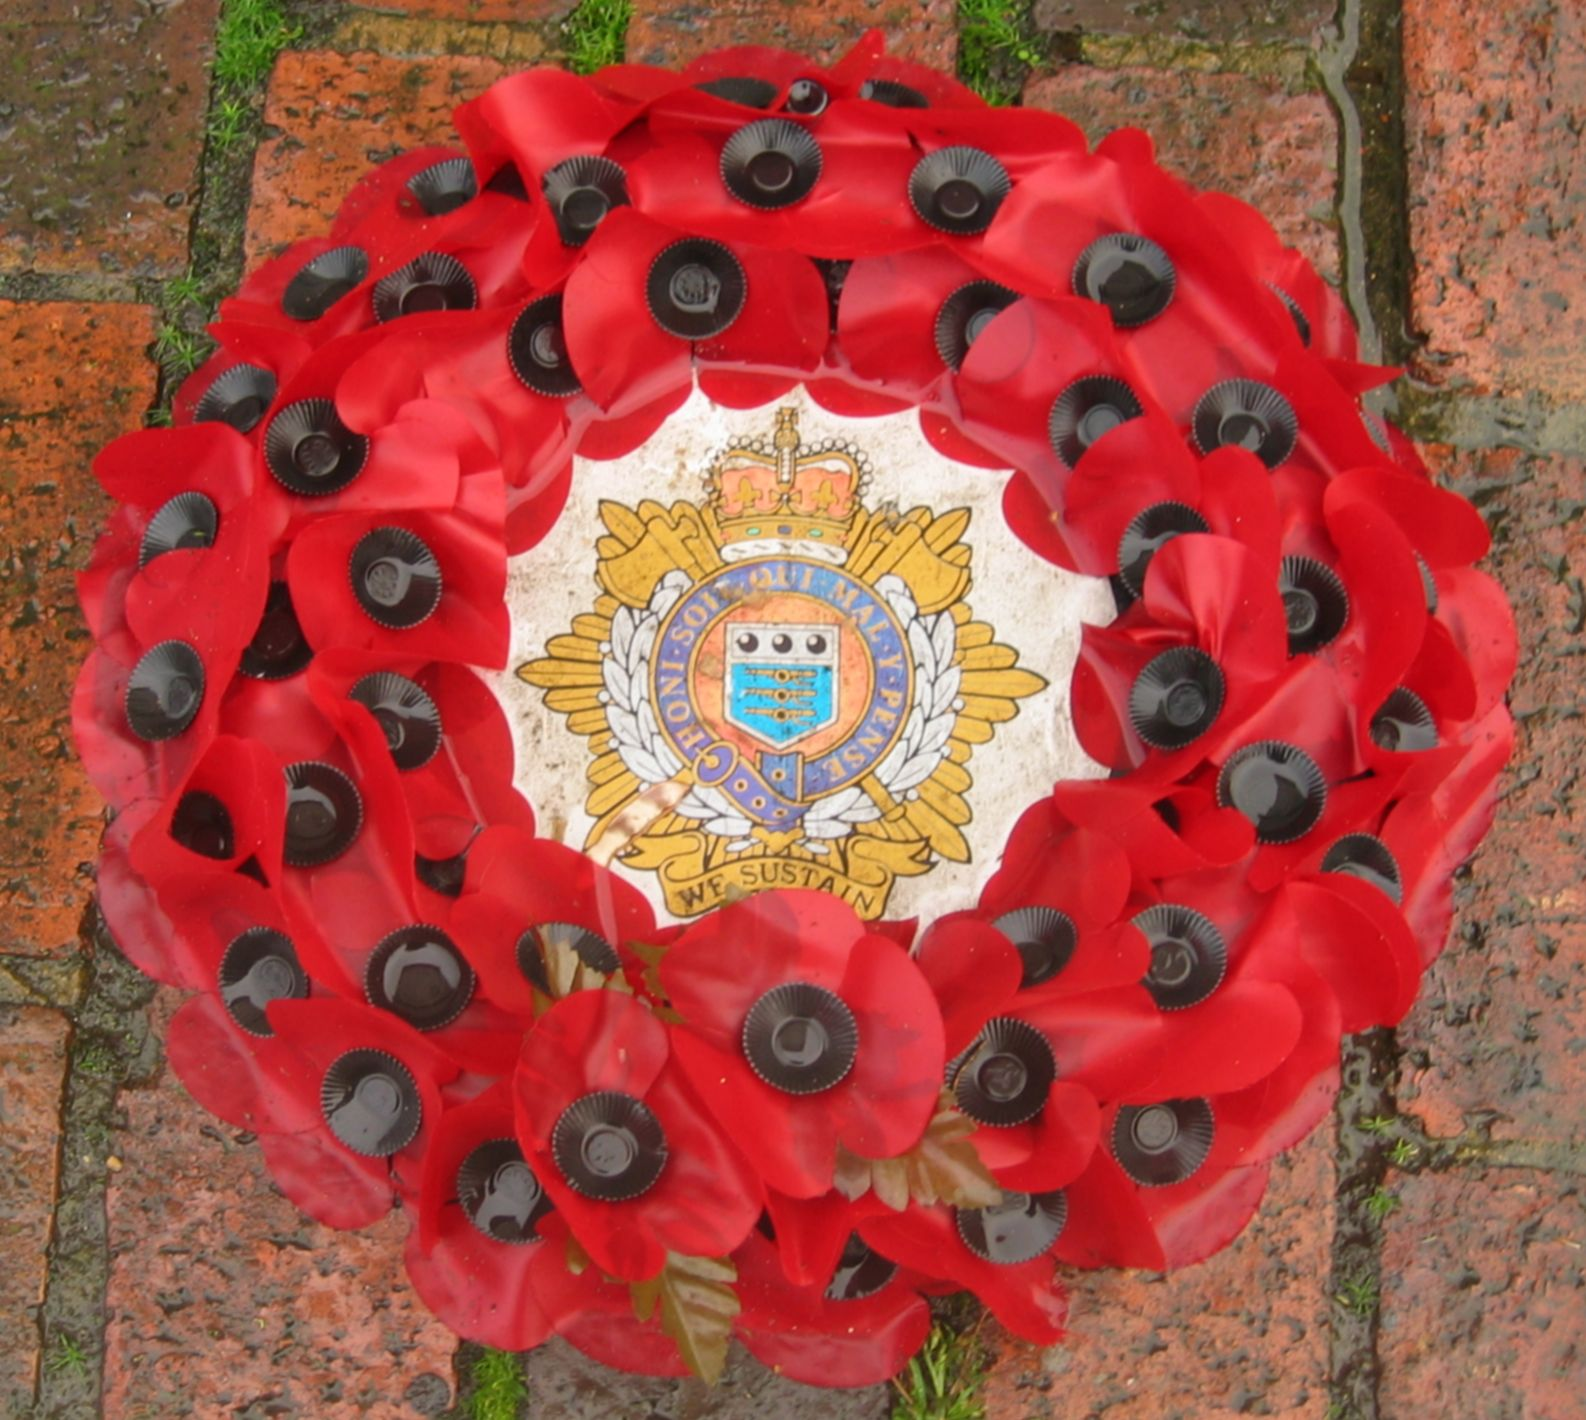 a poppy wreath from the royal british legion poppies pinterest